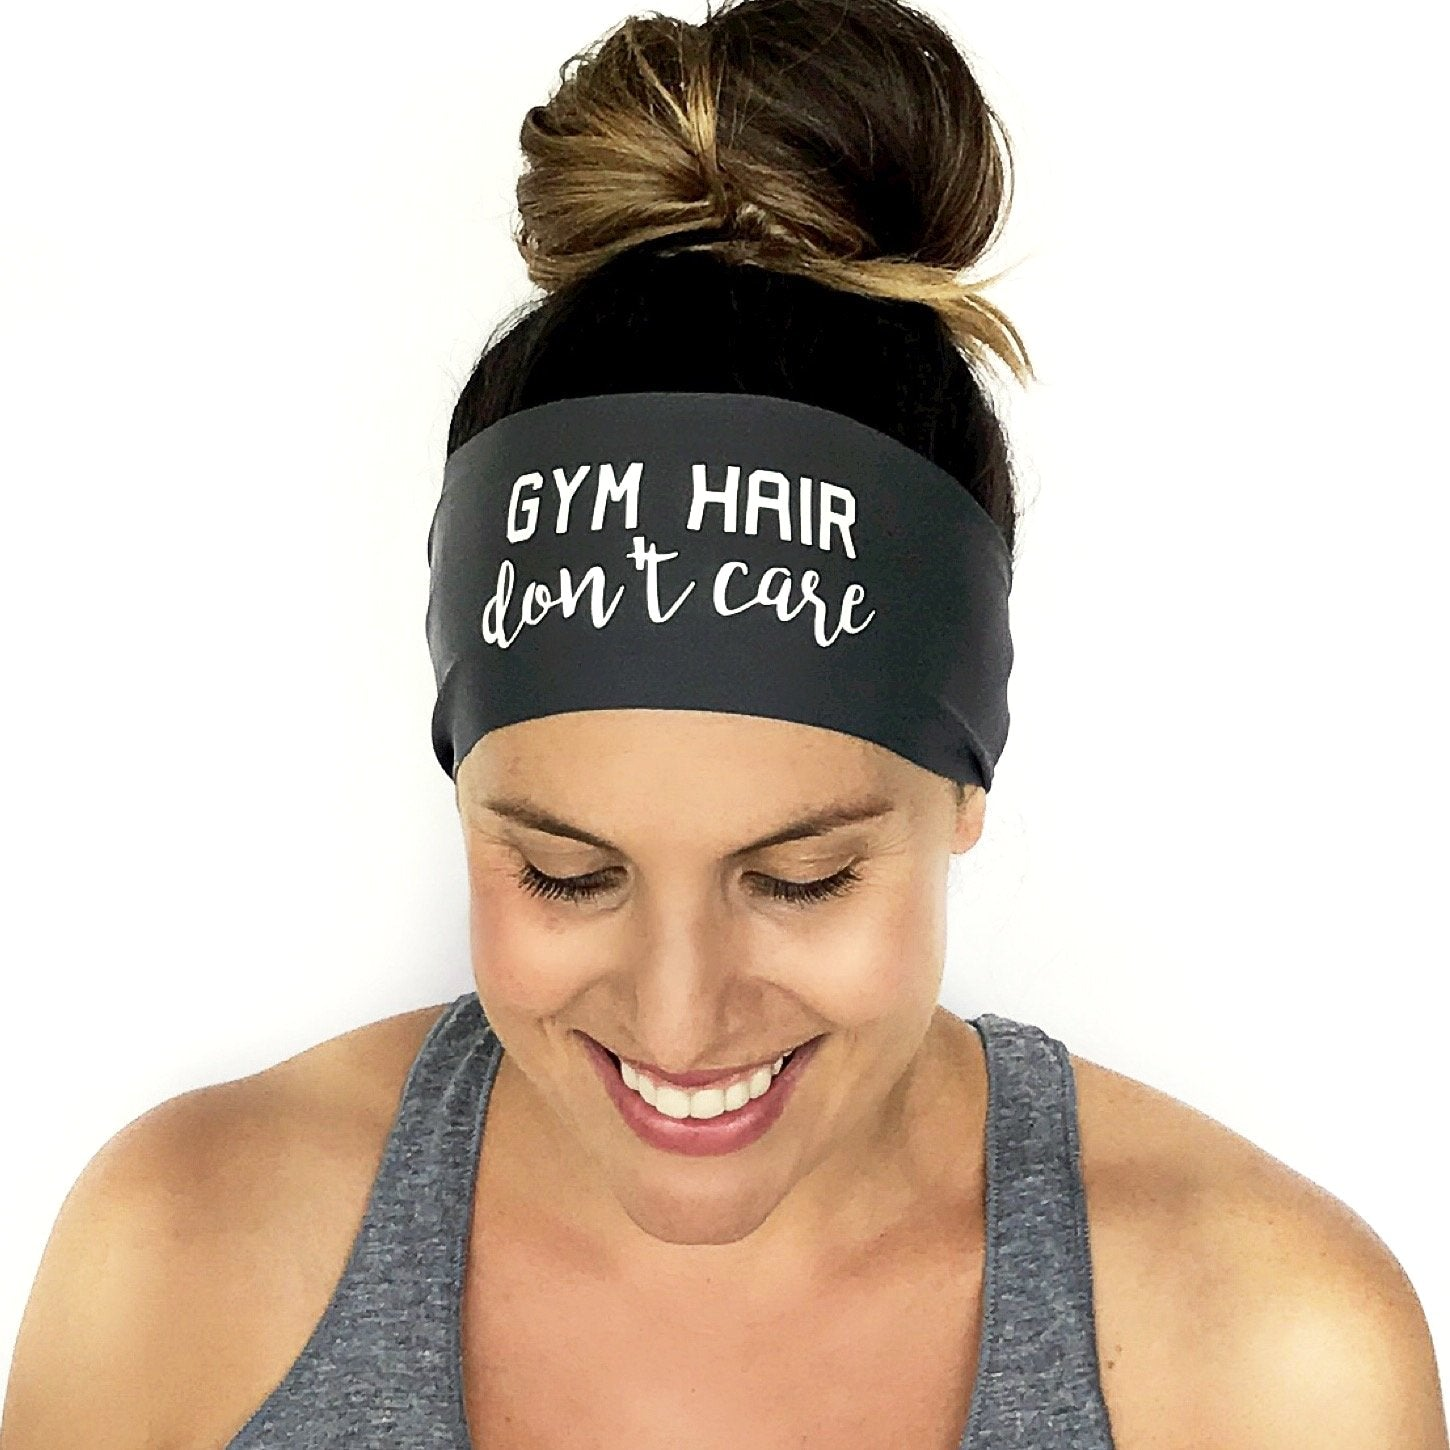 Gym Hair Don't Care Scripted Headband